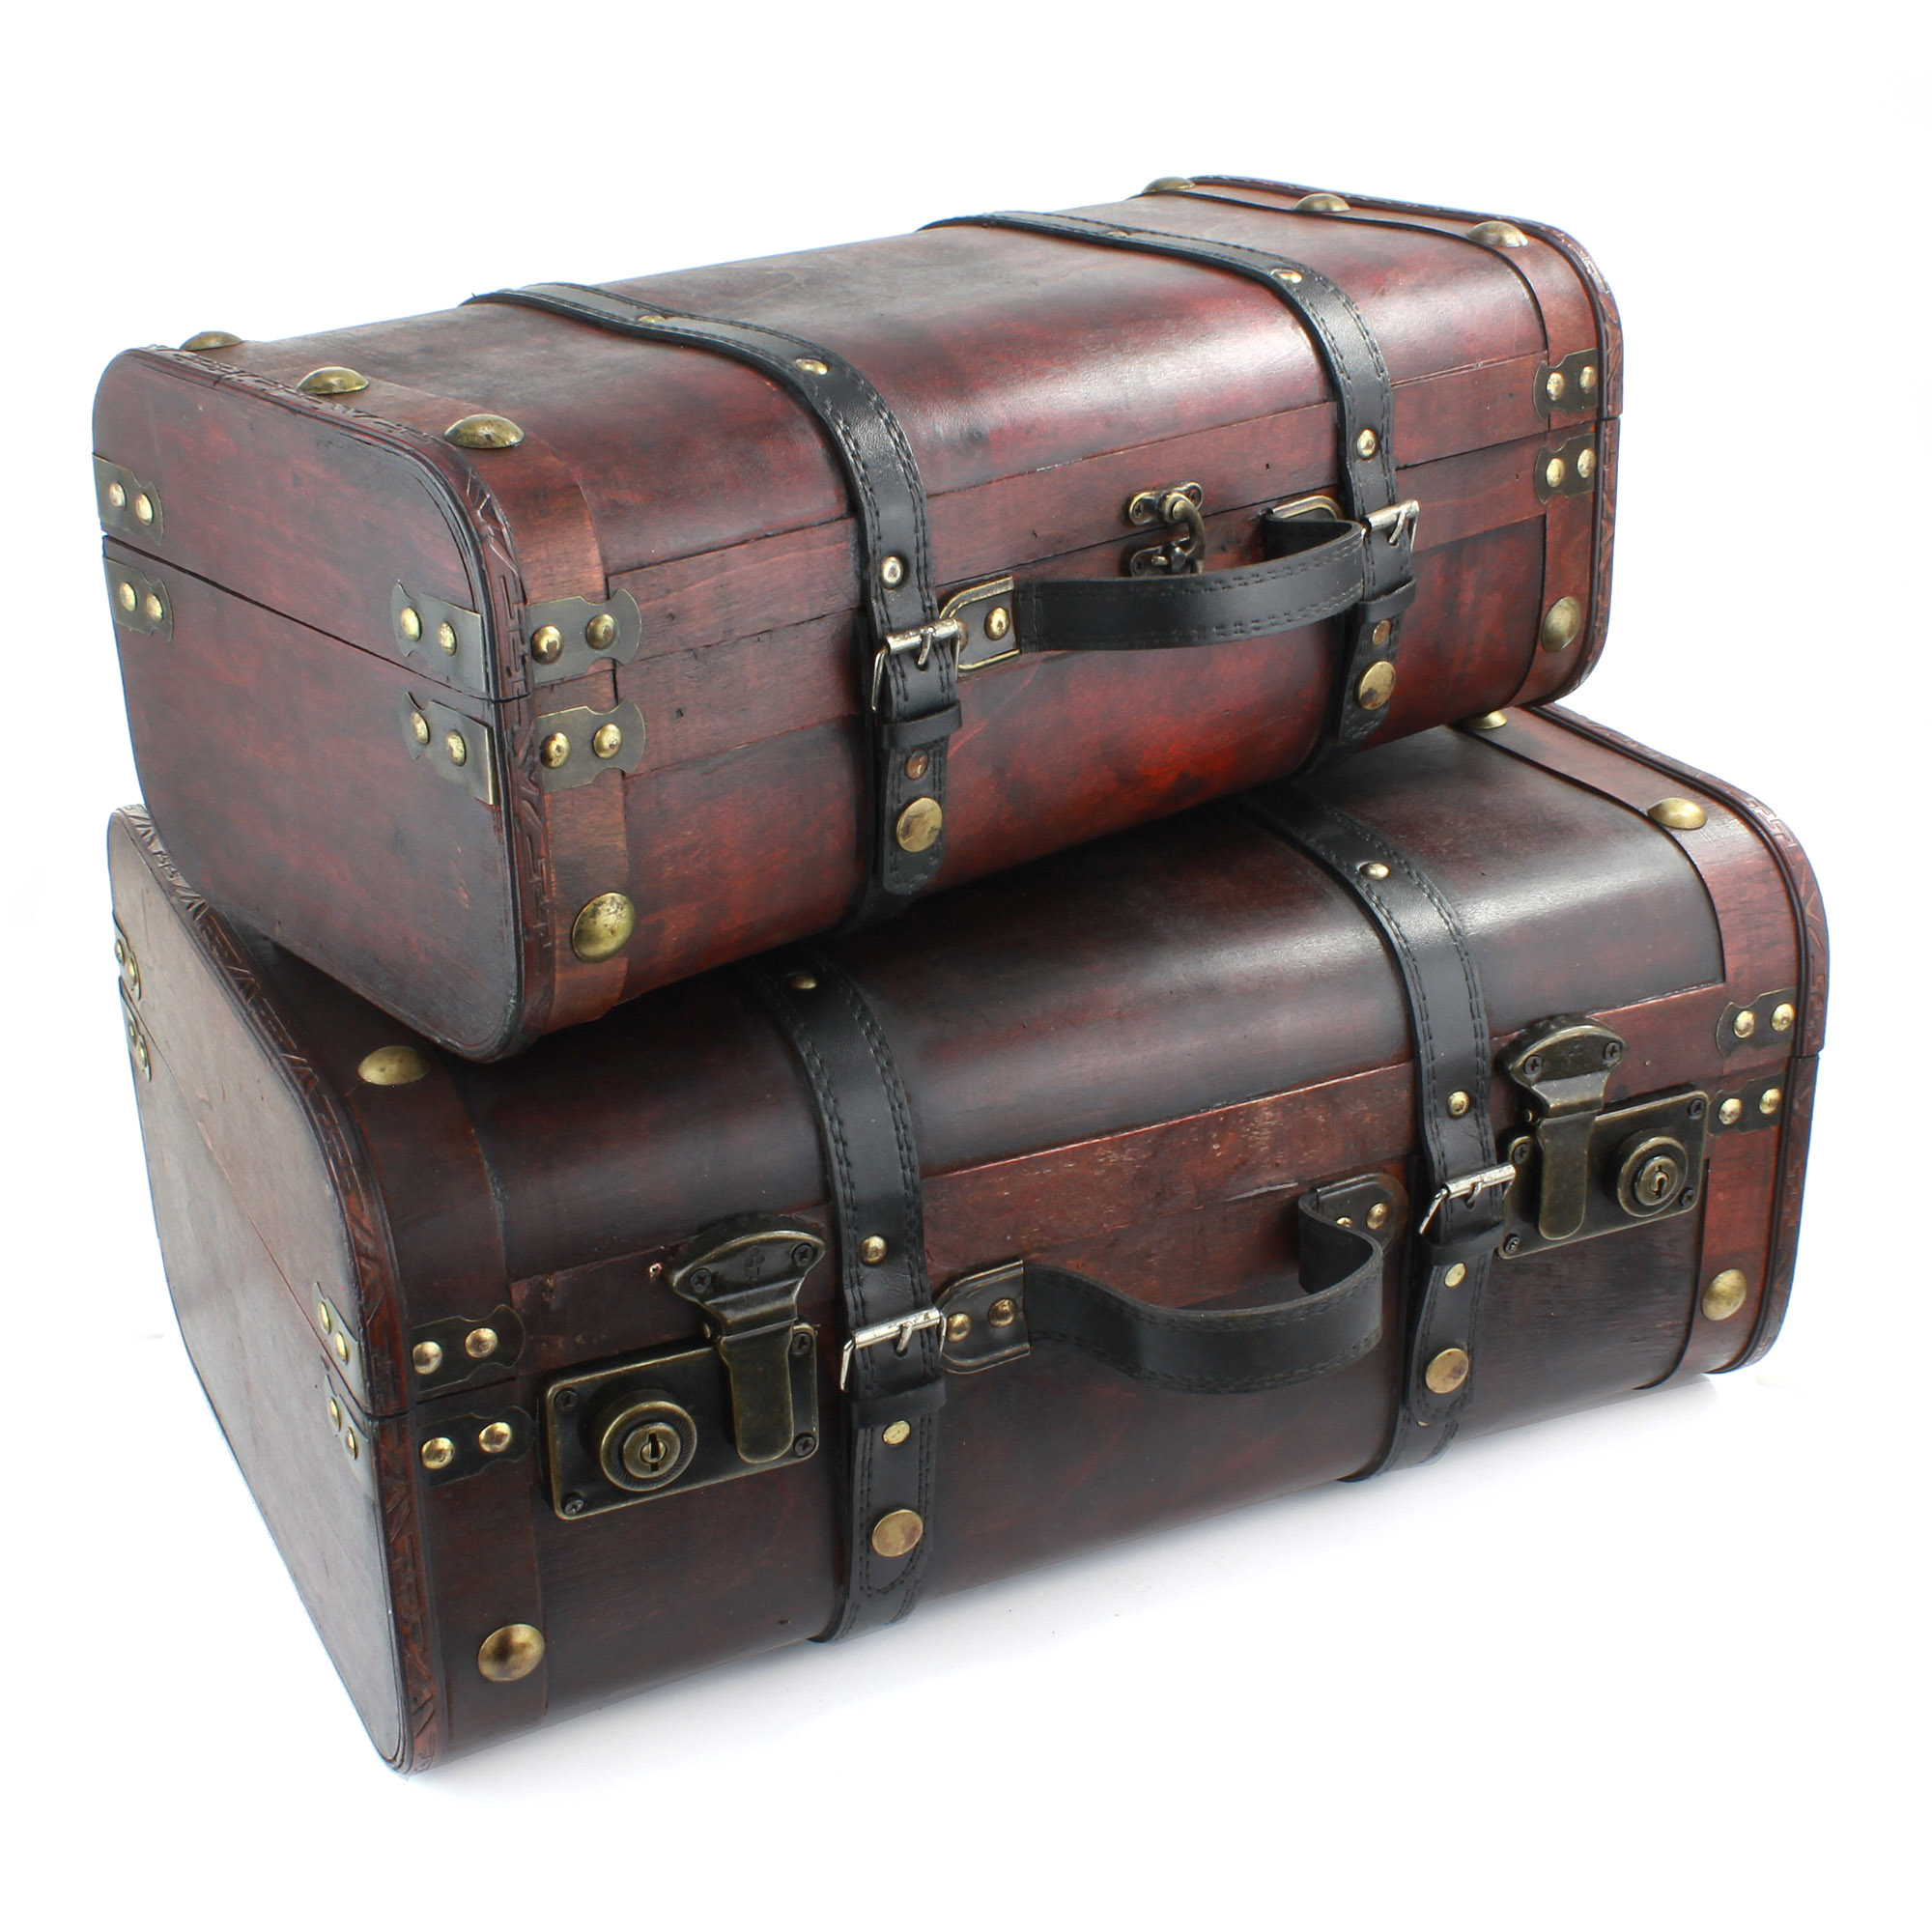 Set of 2 Wooden Suitcases